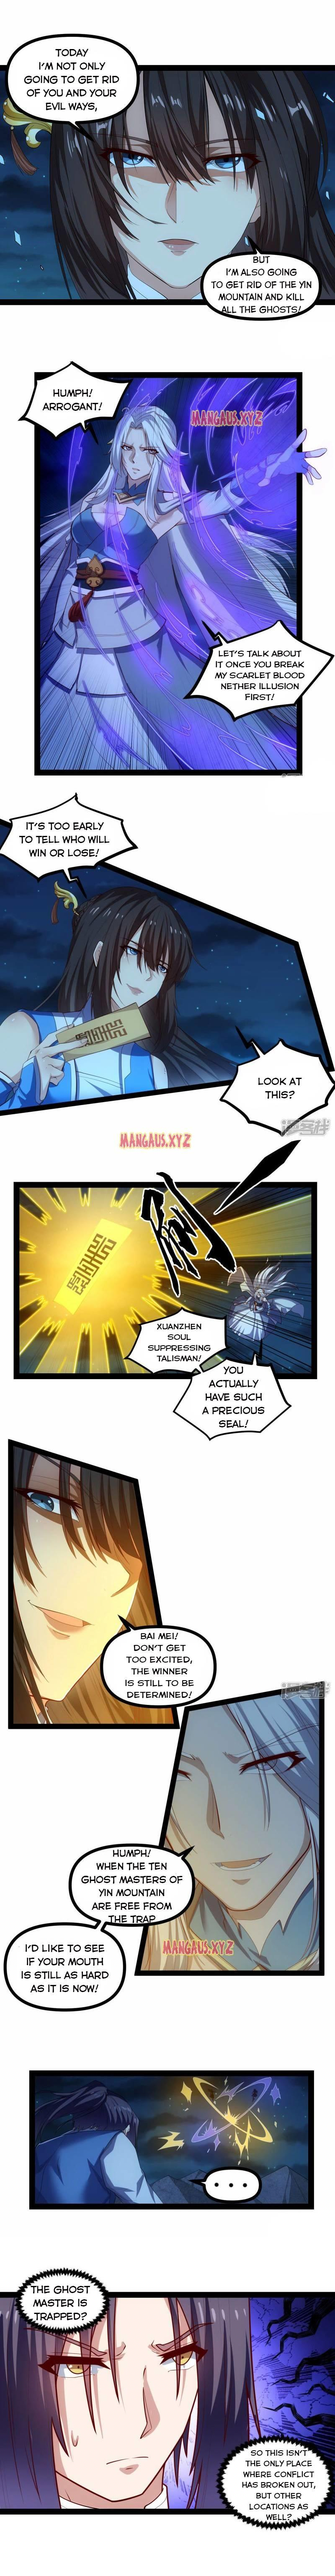 Trample On The River Of Immortality Chapter 141 page 3 - Mangakakalots.com